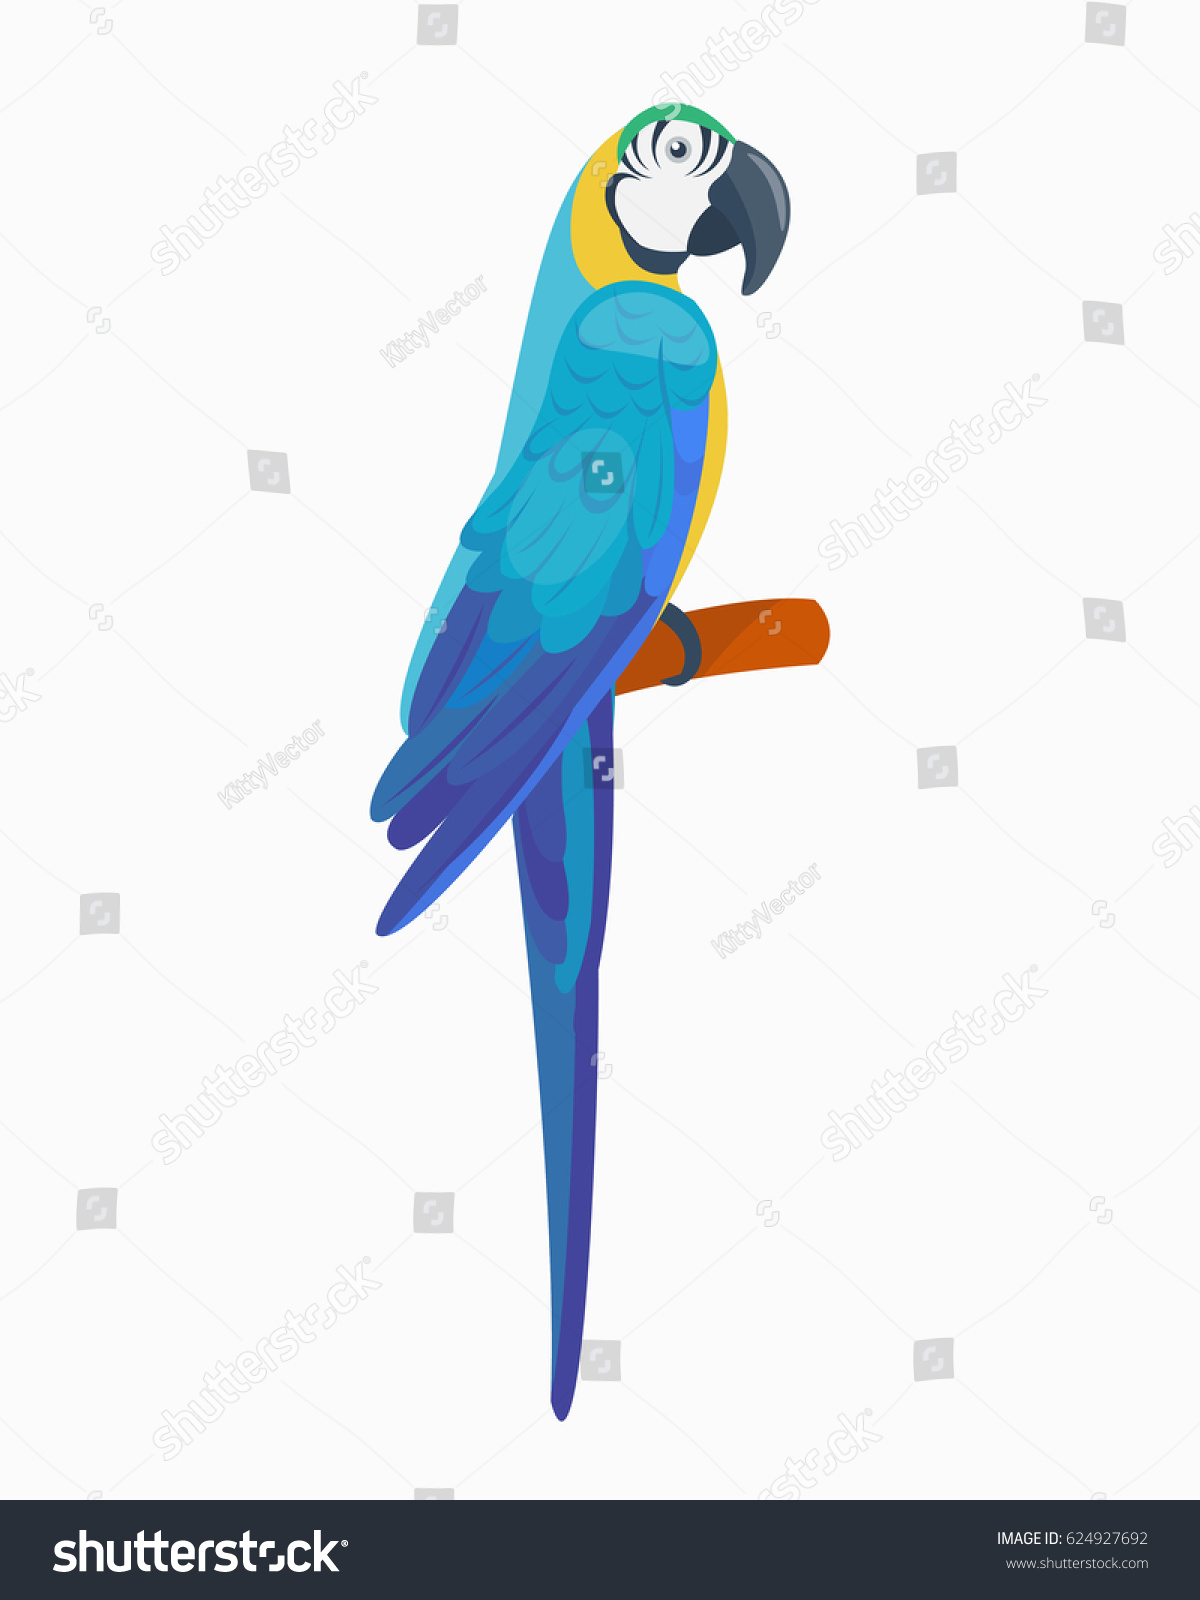 Cartoon Tropical Parrot Wild Animal Bird Stock Vector Royalty Free Origamiorigami Macaw Parrotorigami Diagram Illustration Wildlife Feather Zoo Color Nature Vivid